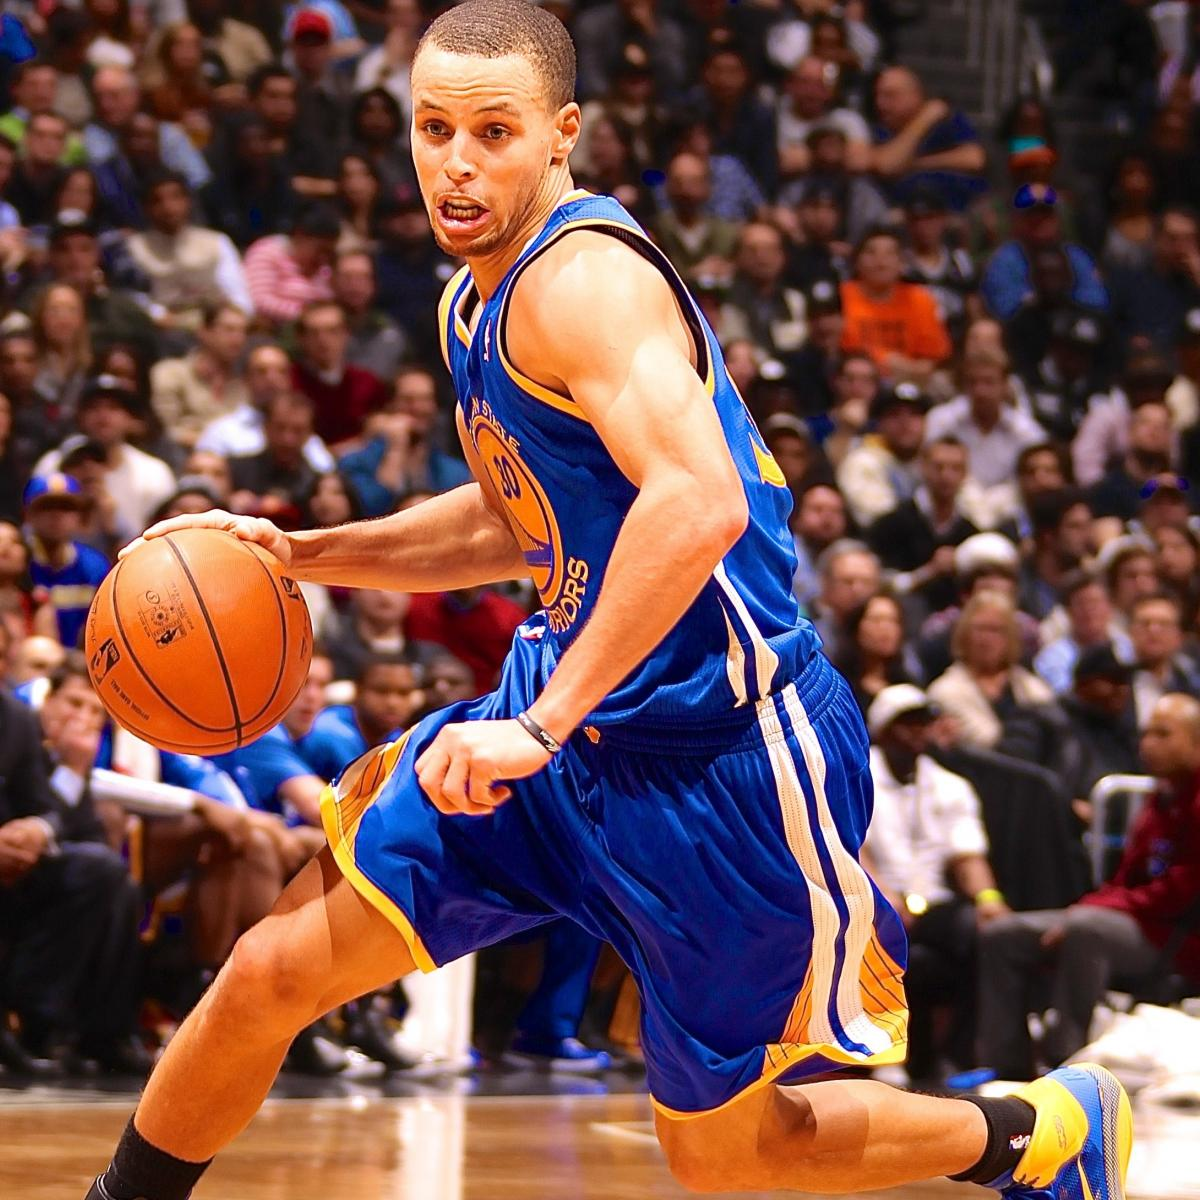 Warriors Vs Nets Full Game Highlights: Golden State Warriors Vs. Brooklyn Nets: Live Score And